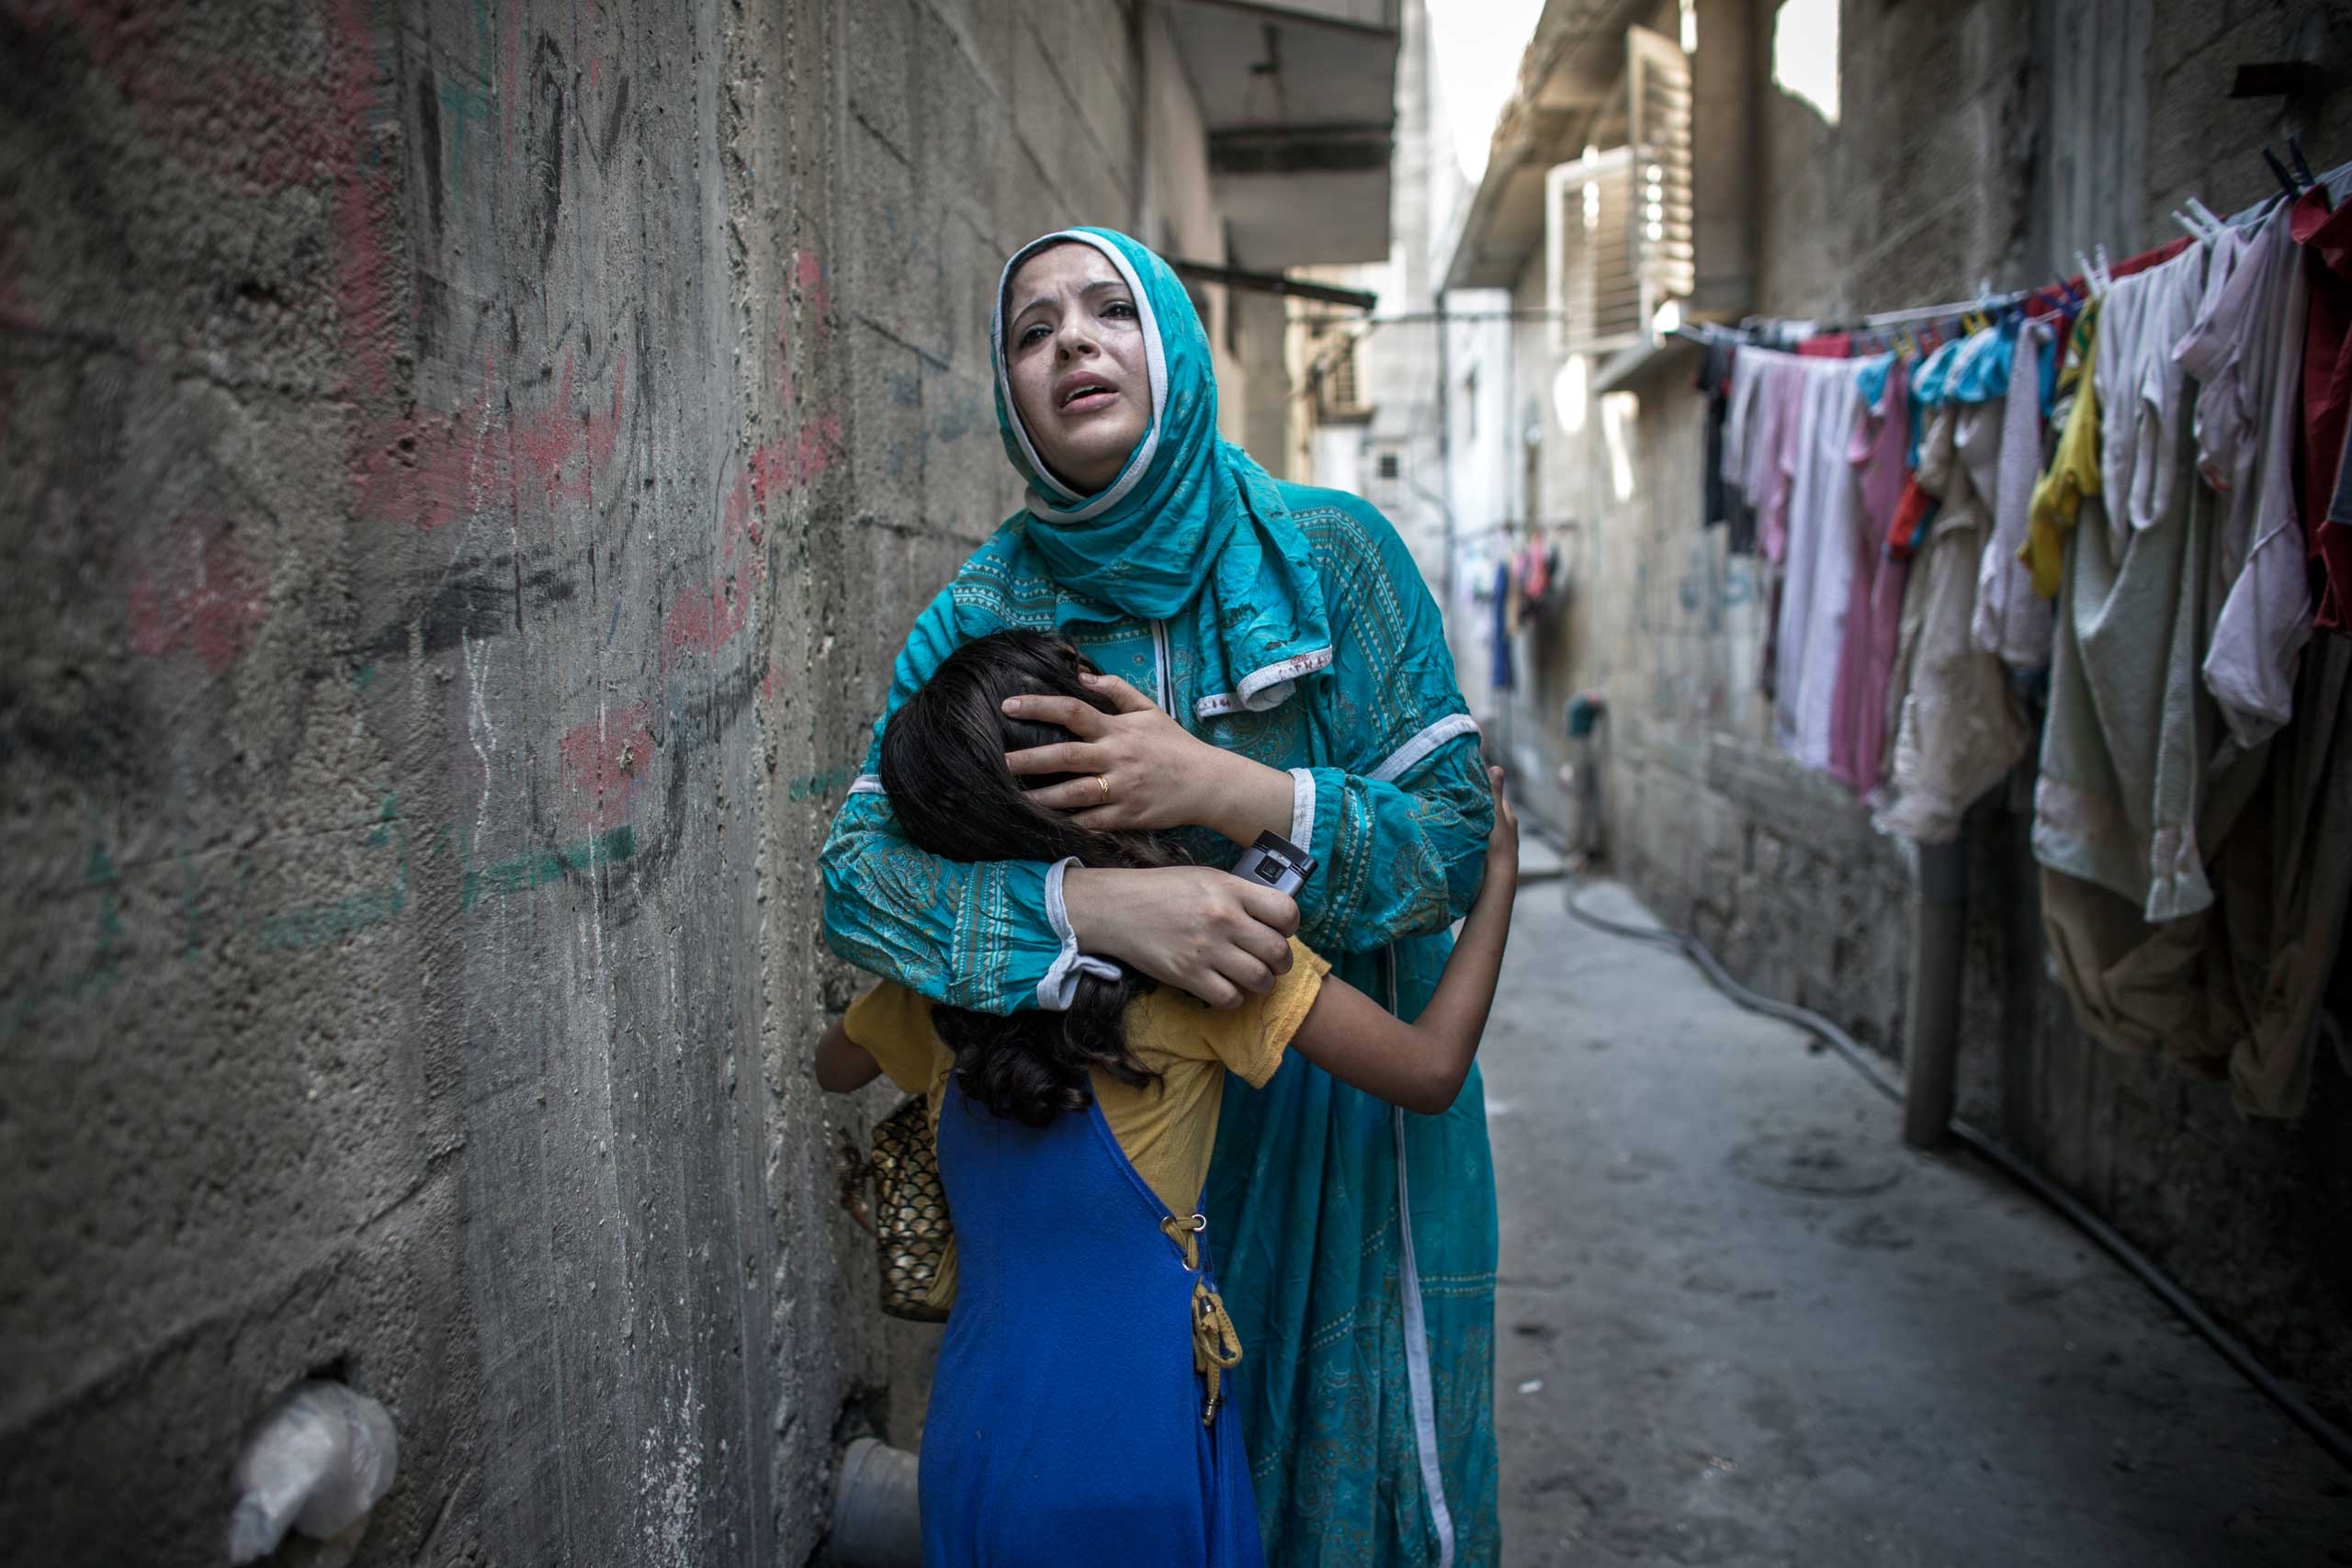 Young Palestinians react shortly after an airstrike, Gaza City, July 28, 2014.